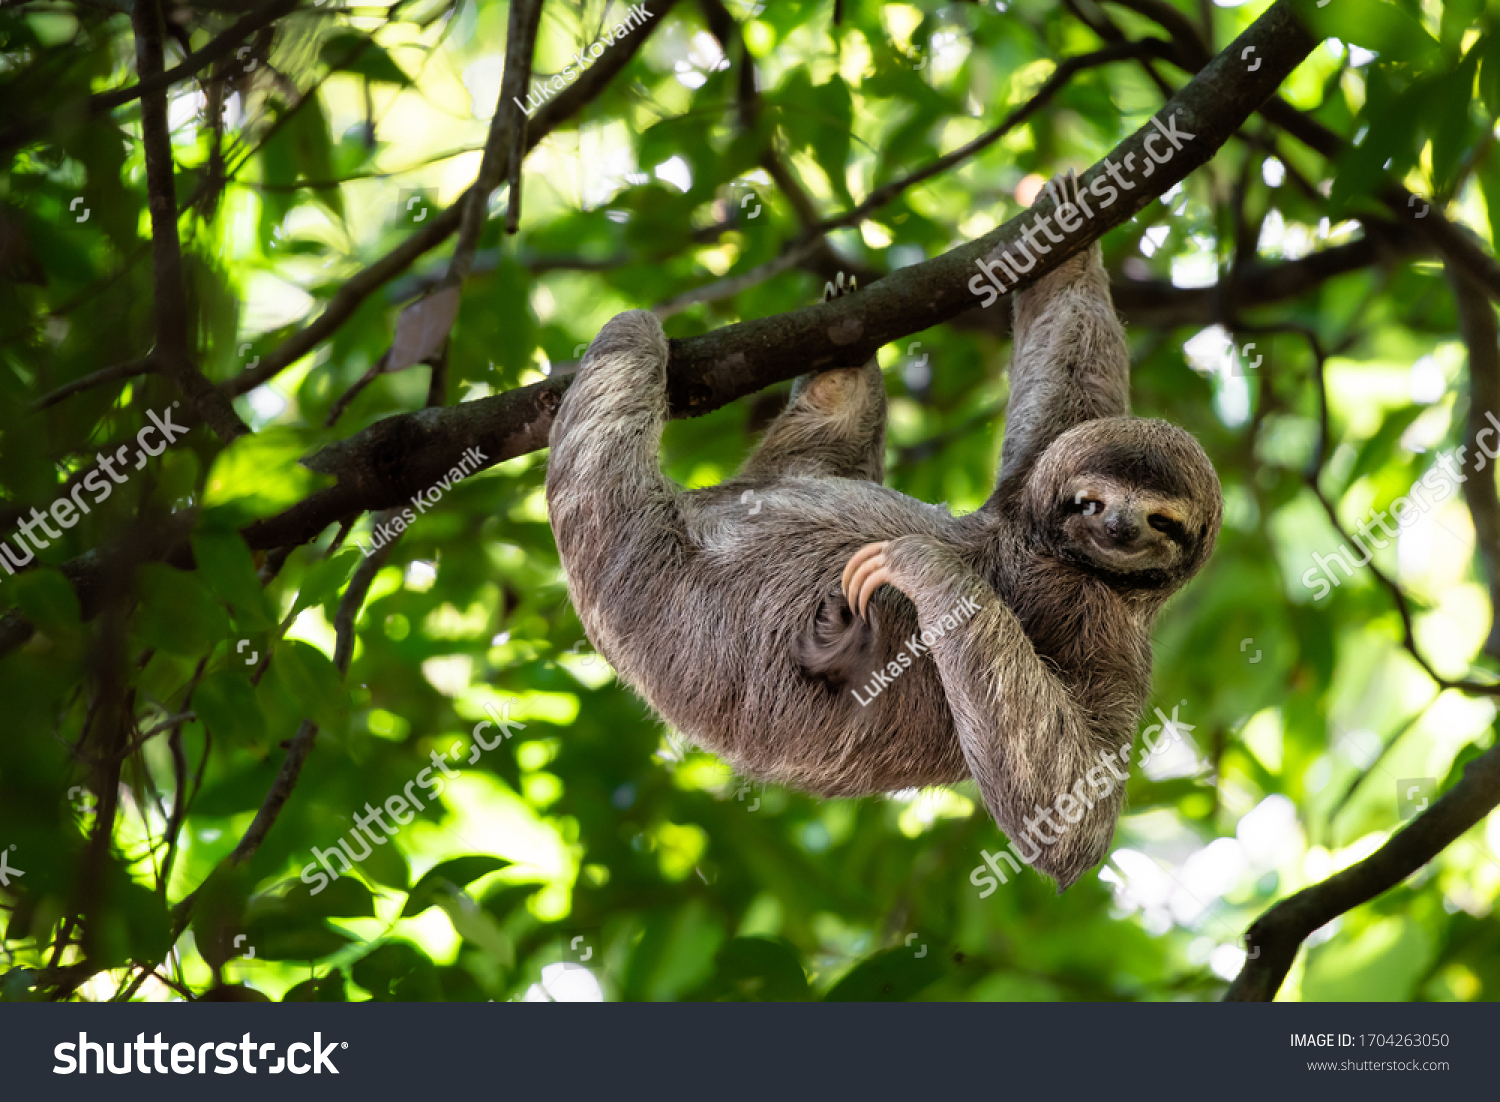 Cute sloth hanging on tree branch with funny face look, perfect portrait of wild animal in the Rainforest of Costa Rica scratching the belly, Bradypus variegatus, brown-throated three-toed sloth, #1704263050